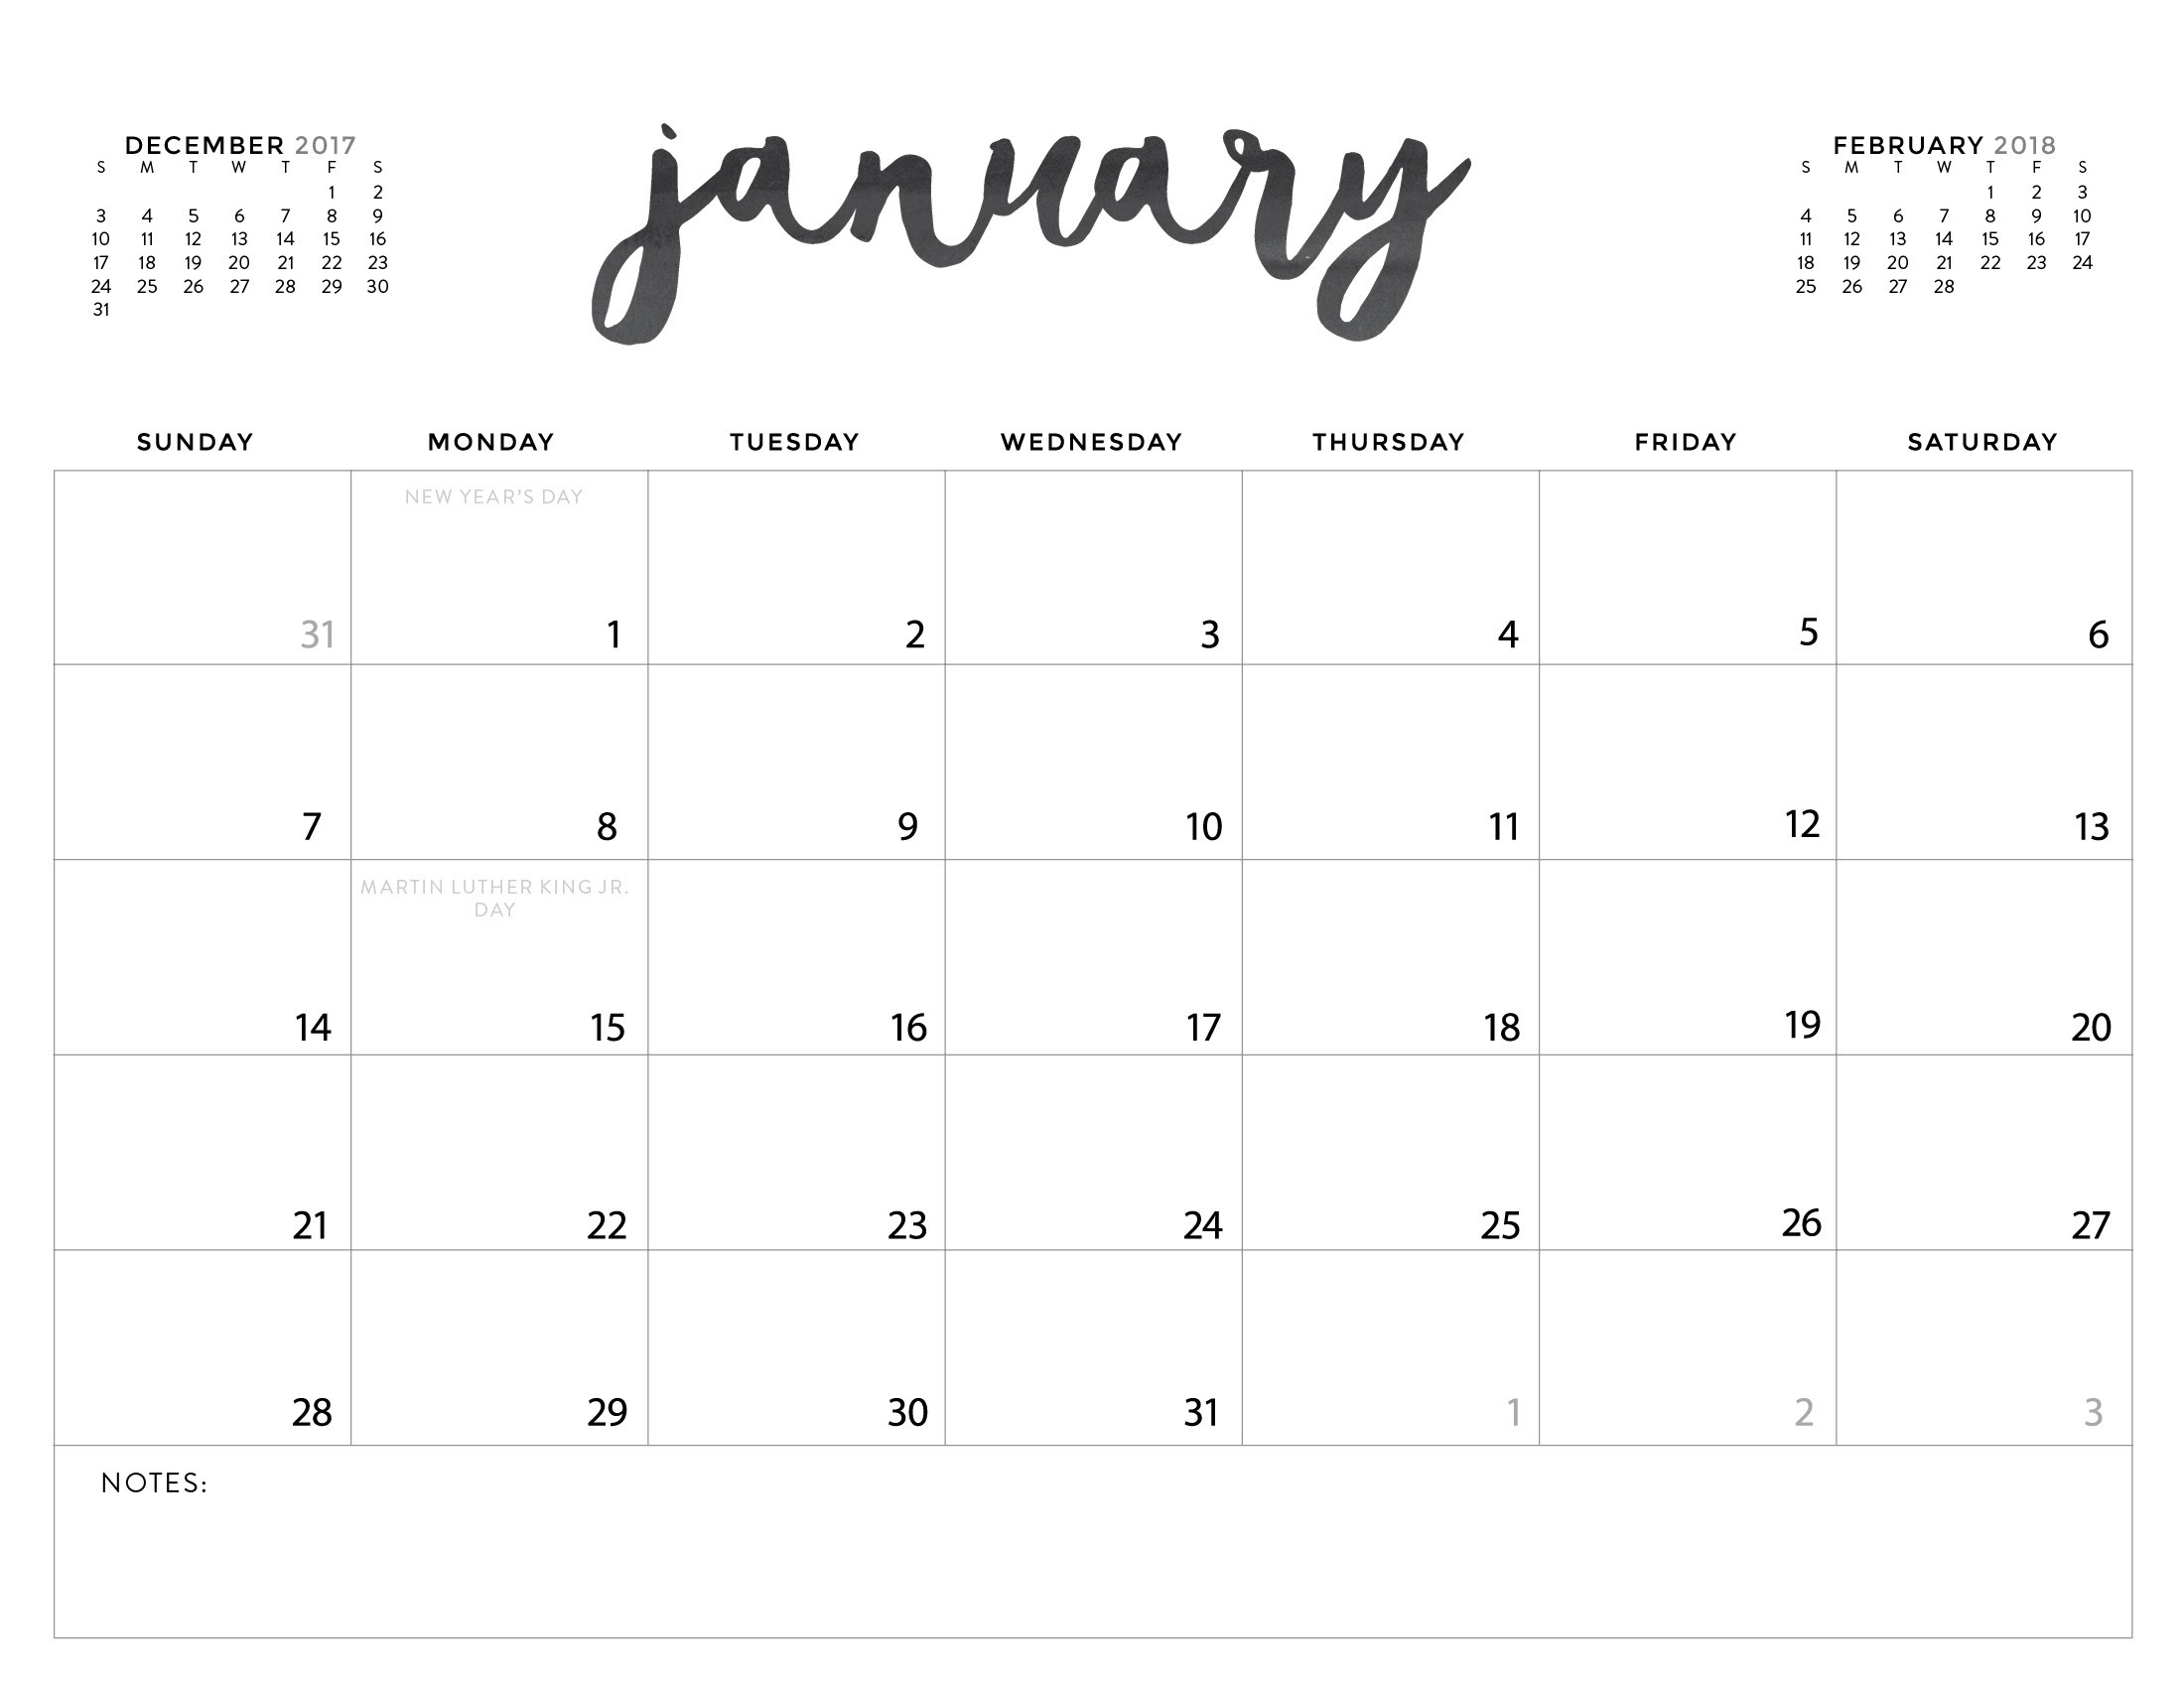 Free Printable 2018 Calendar: Pretty and Colorful! | Free